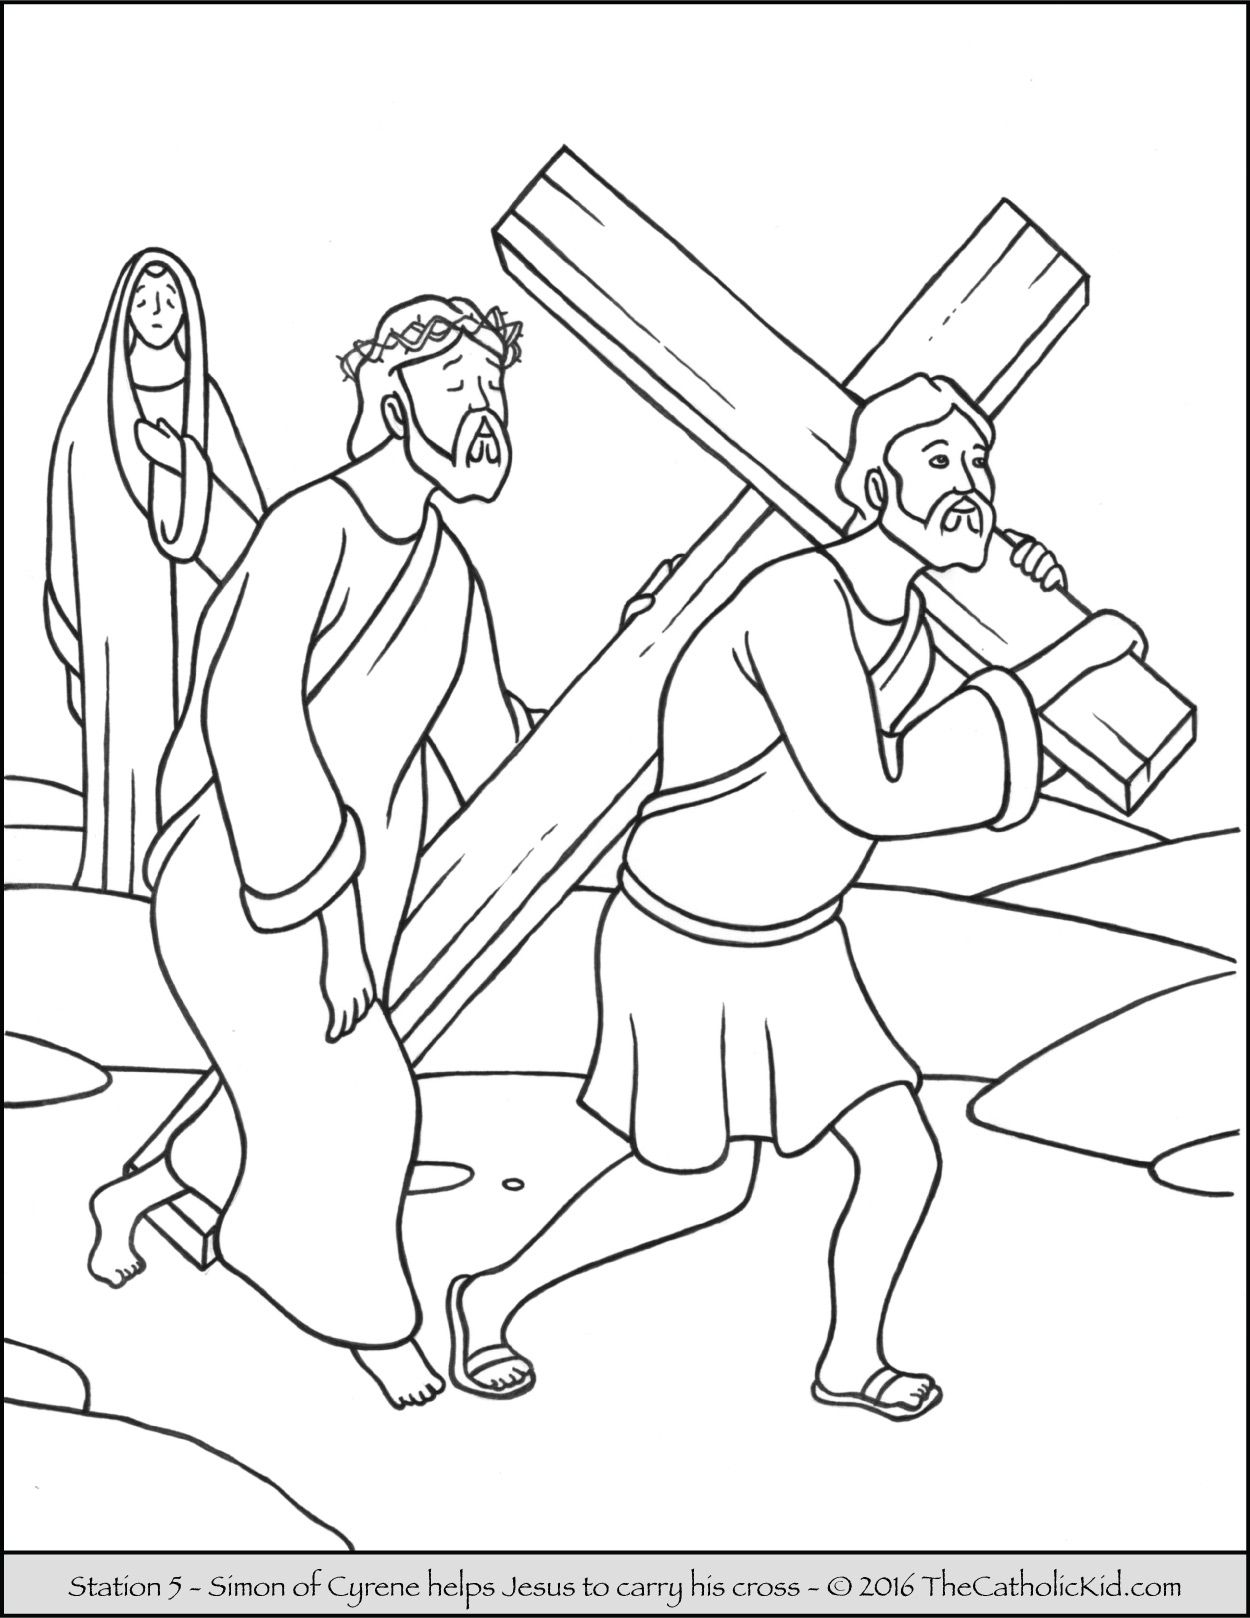 Coloring pages for adults crosses - Stations Of The Cross Coloring Pages 5 Simon Of Cyrene Helps Jesus To Carry His